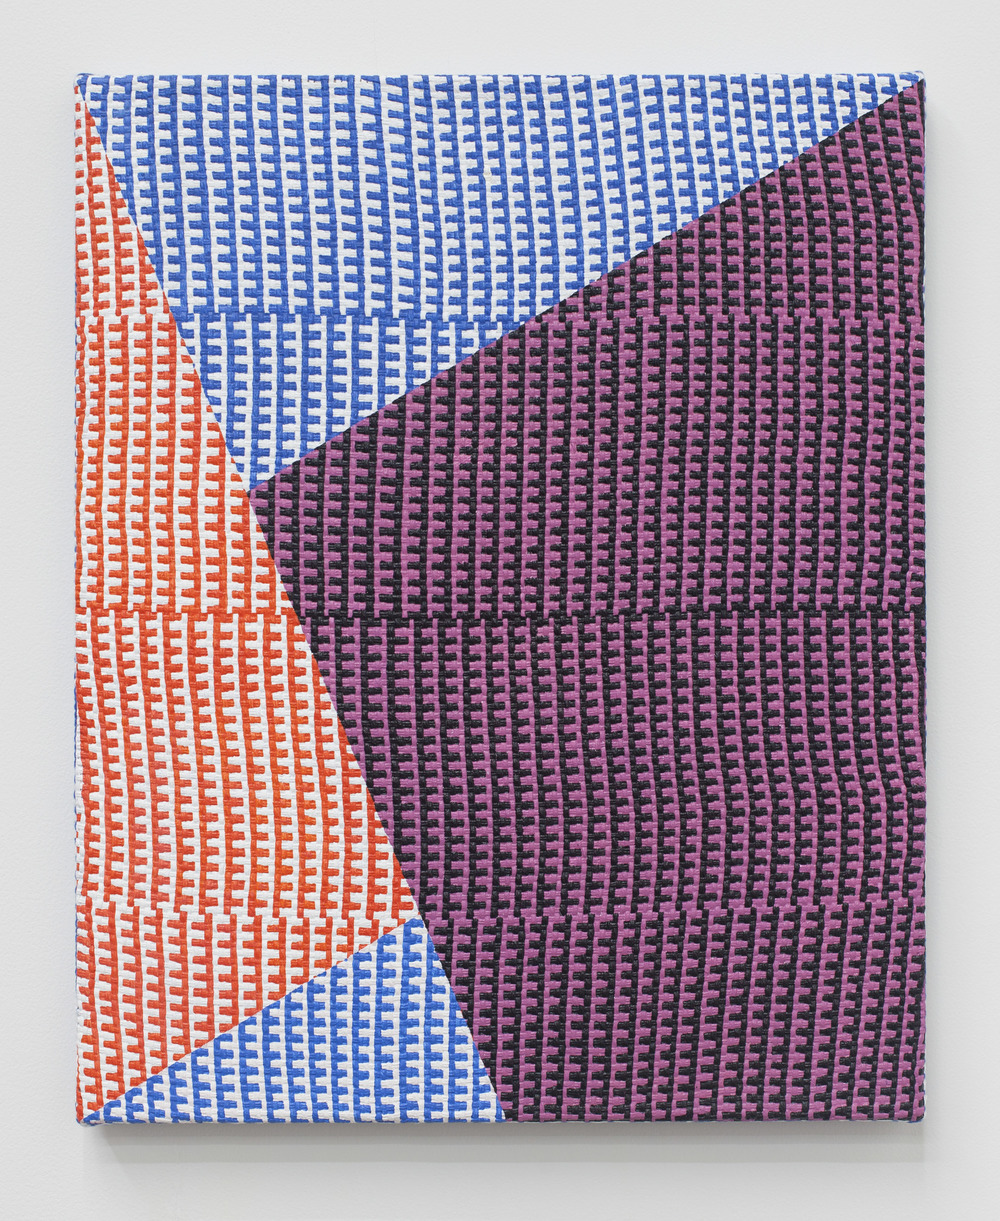 "SAMANTHA BITTMAN, Untitled, 2015, acrylic on hand-woven textile, 20"" x 16"""